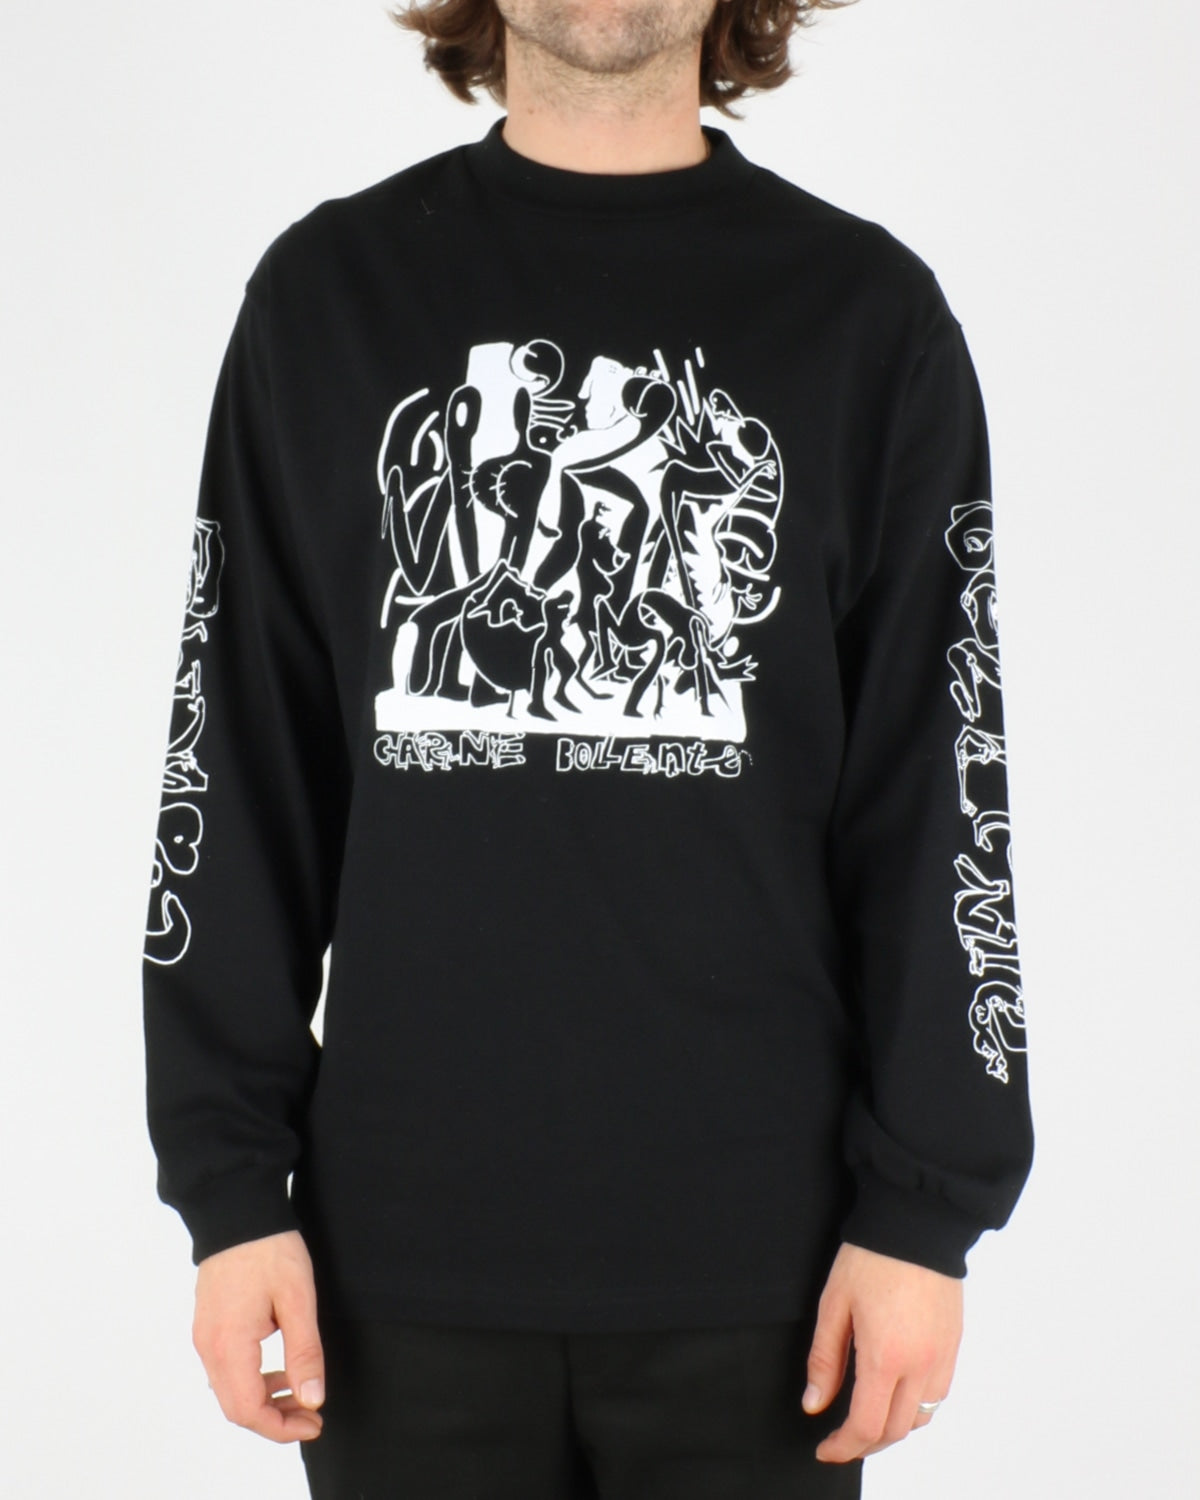 carne bollente_chicken wings of desire longsleeve_black_1_5